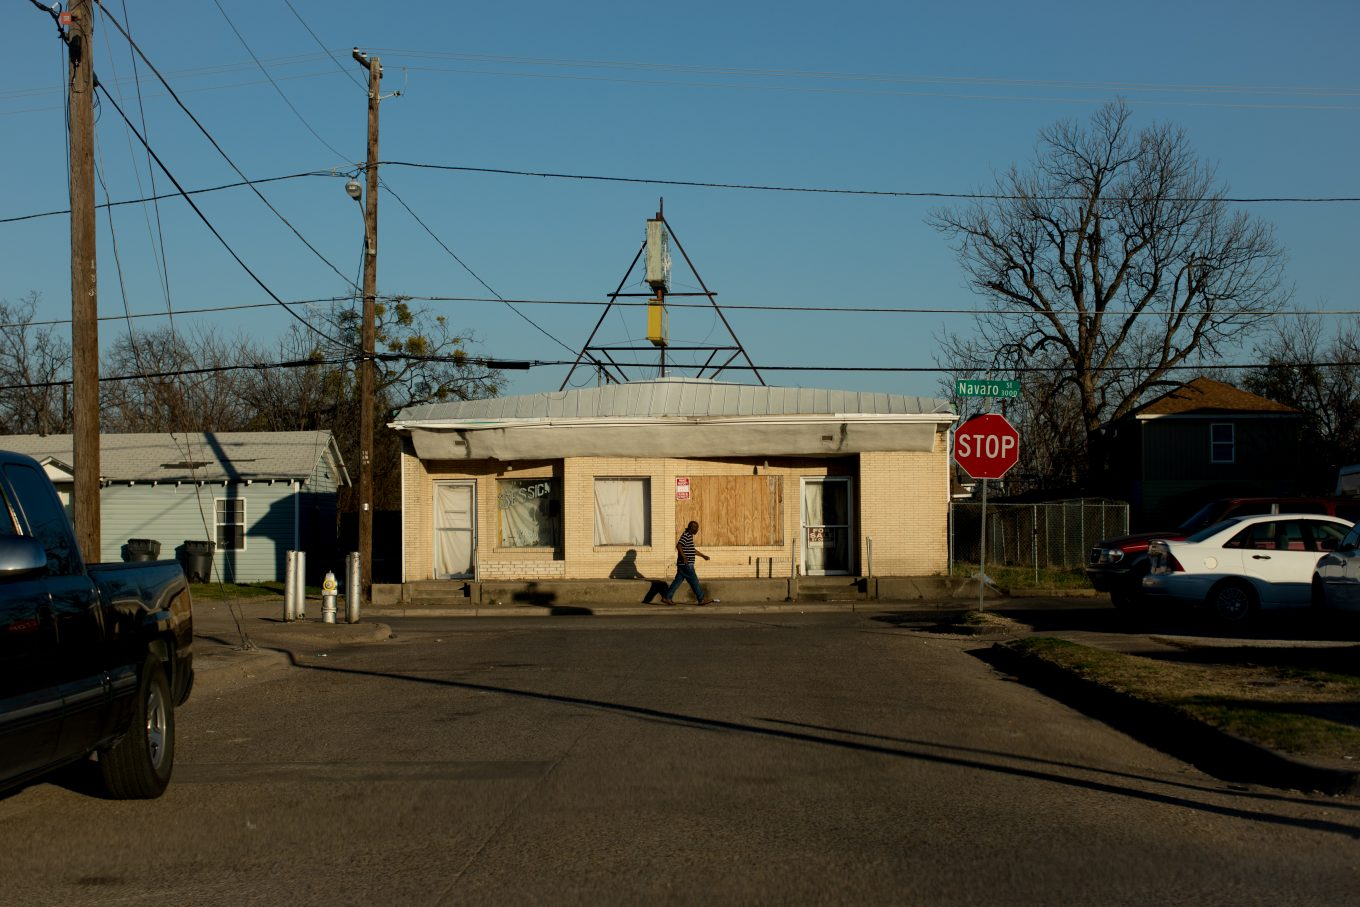 West Dallas